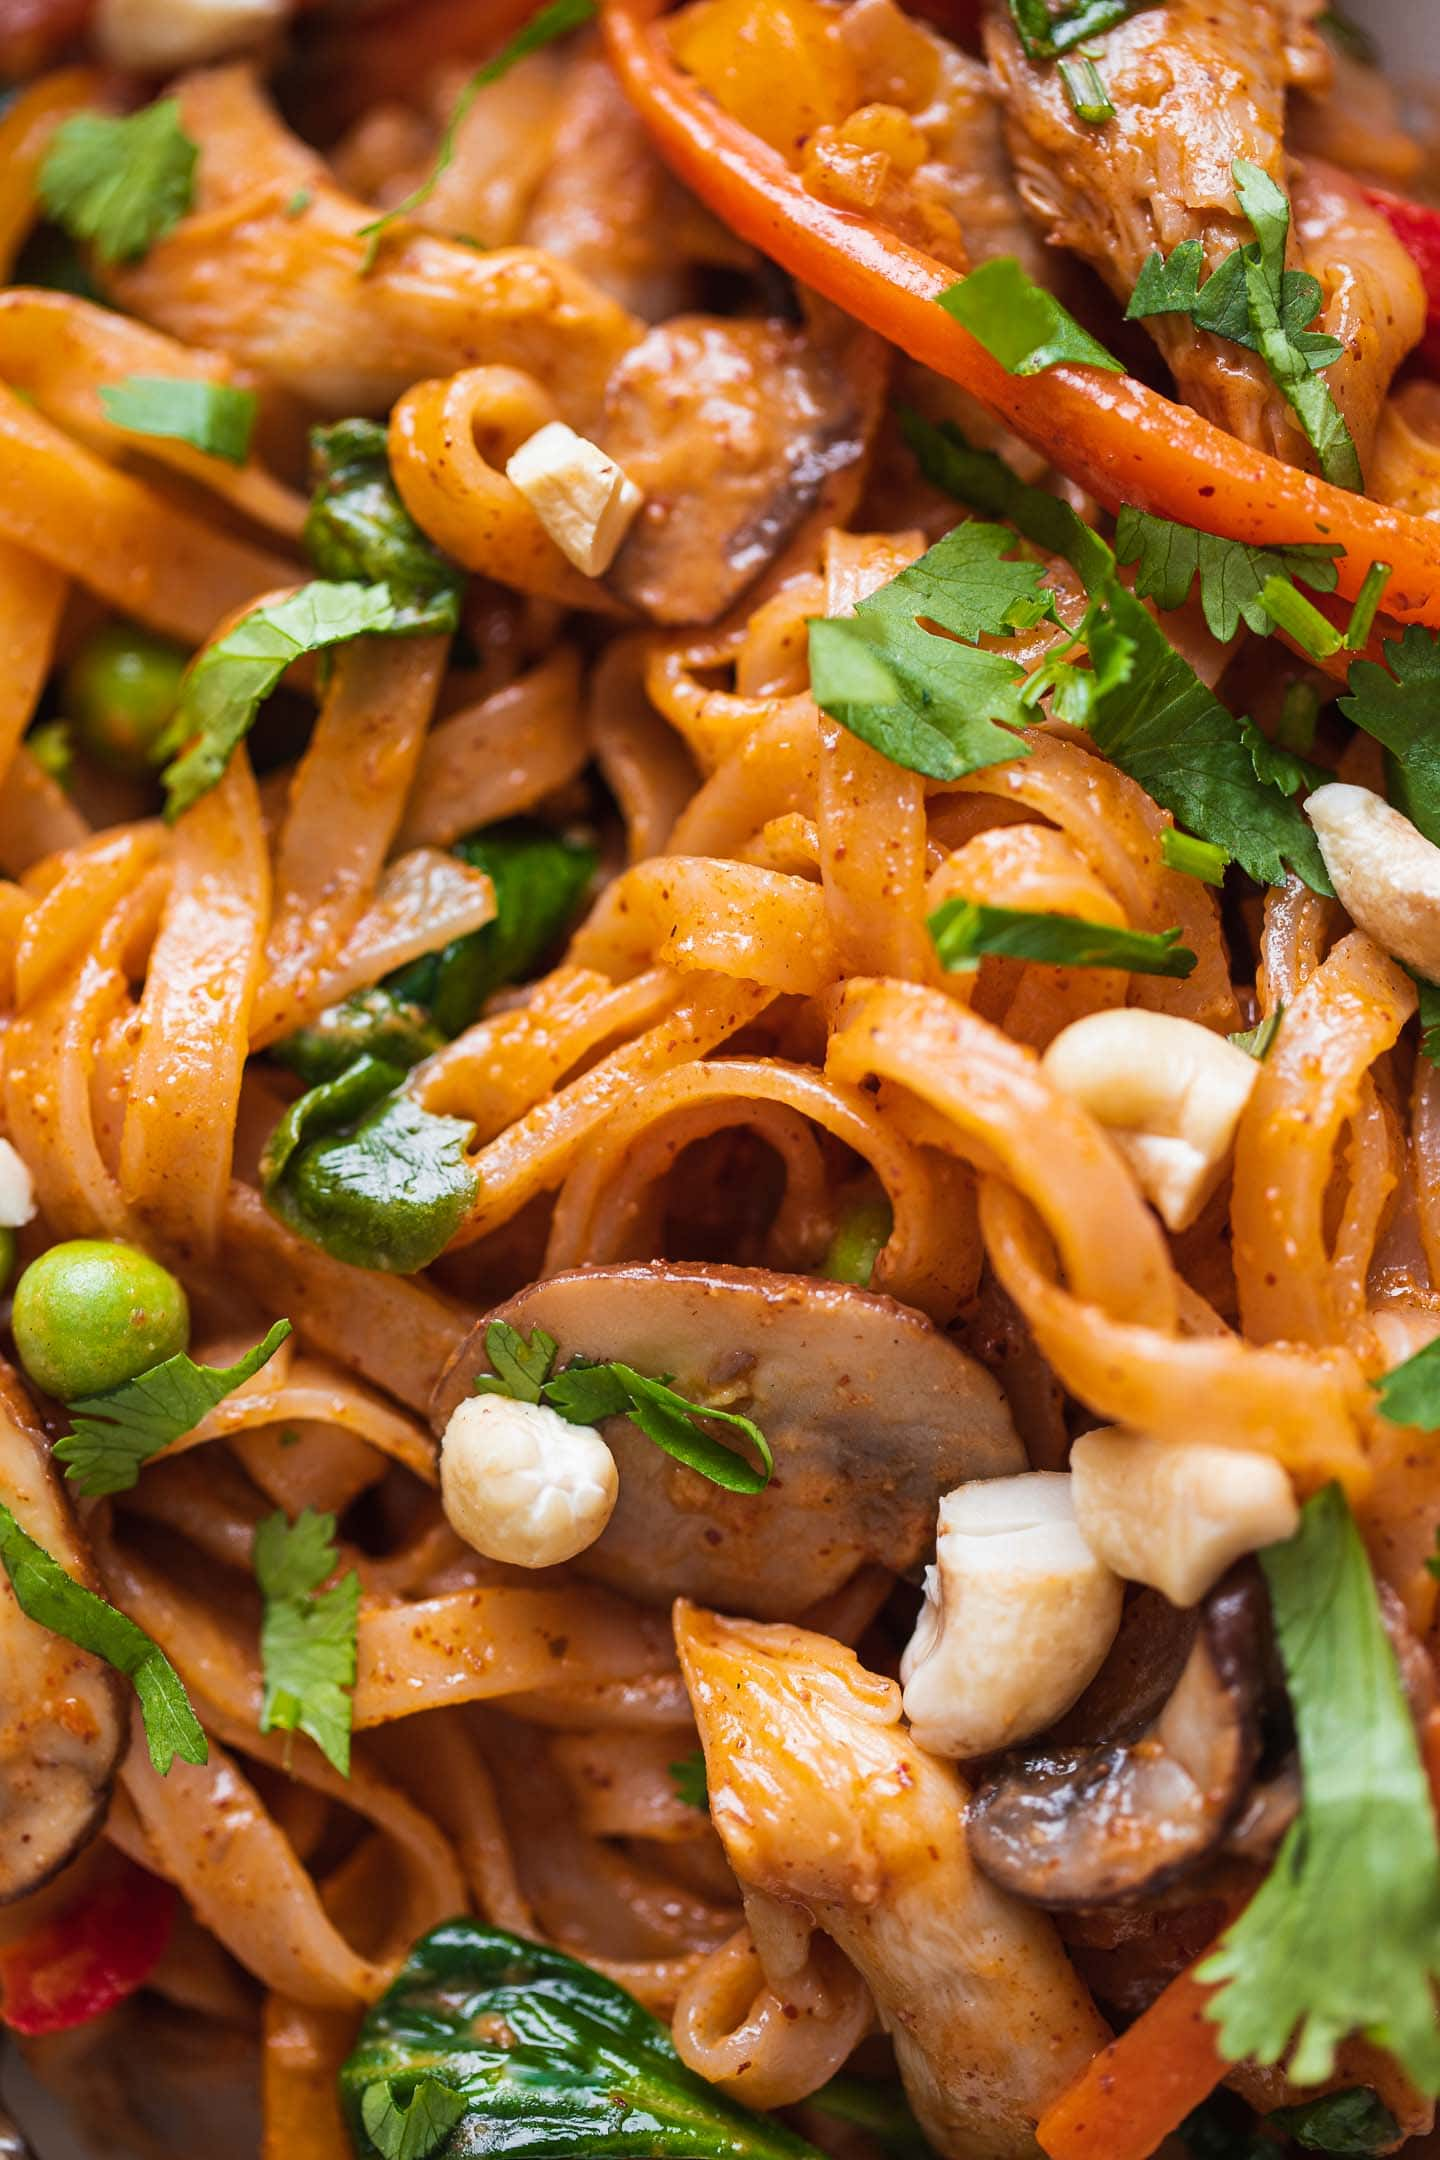 Closeup of a stir-fry with vegetables and rice noodles